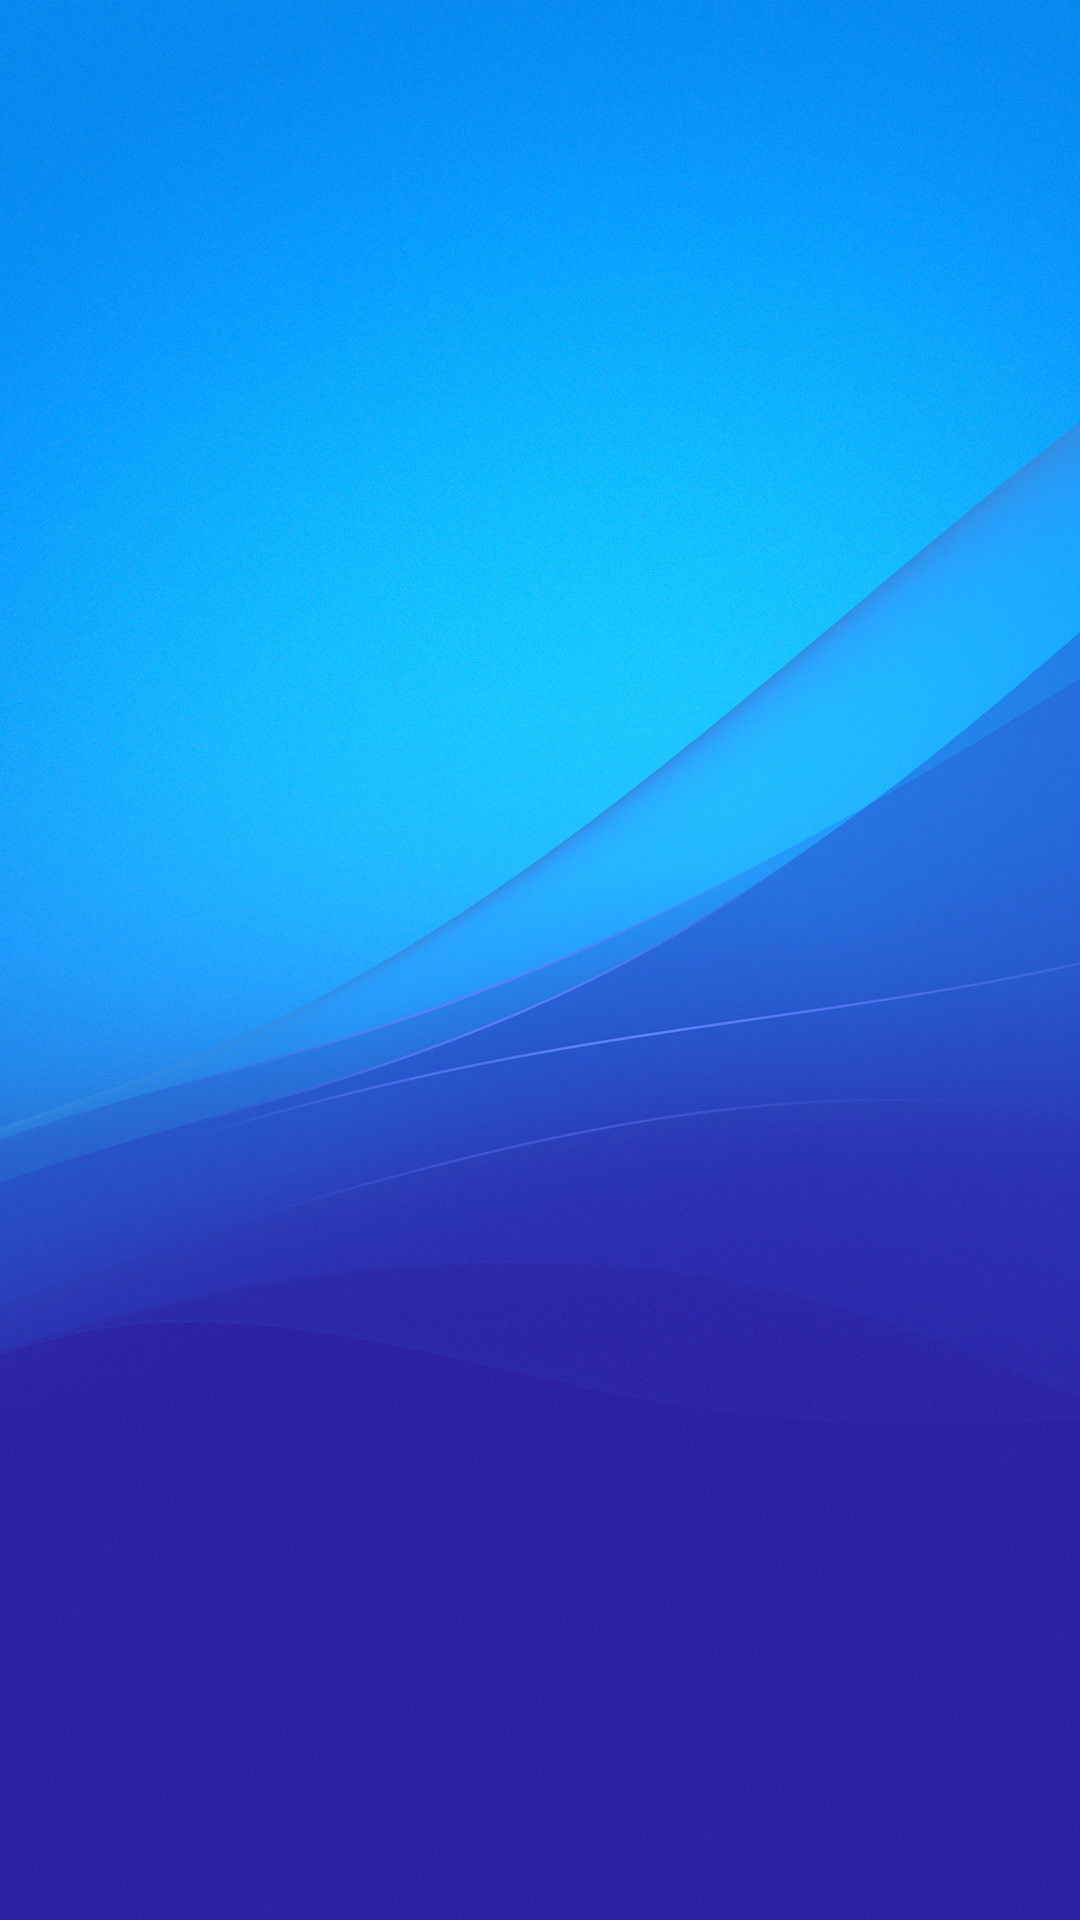 Xperia lollipop blue wallpaper gizmo bolt exposing for Wallpaper xperia home